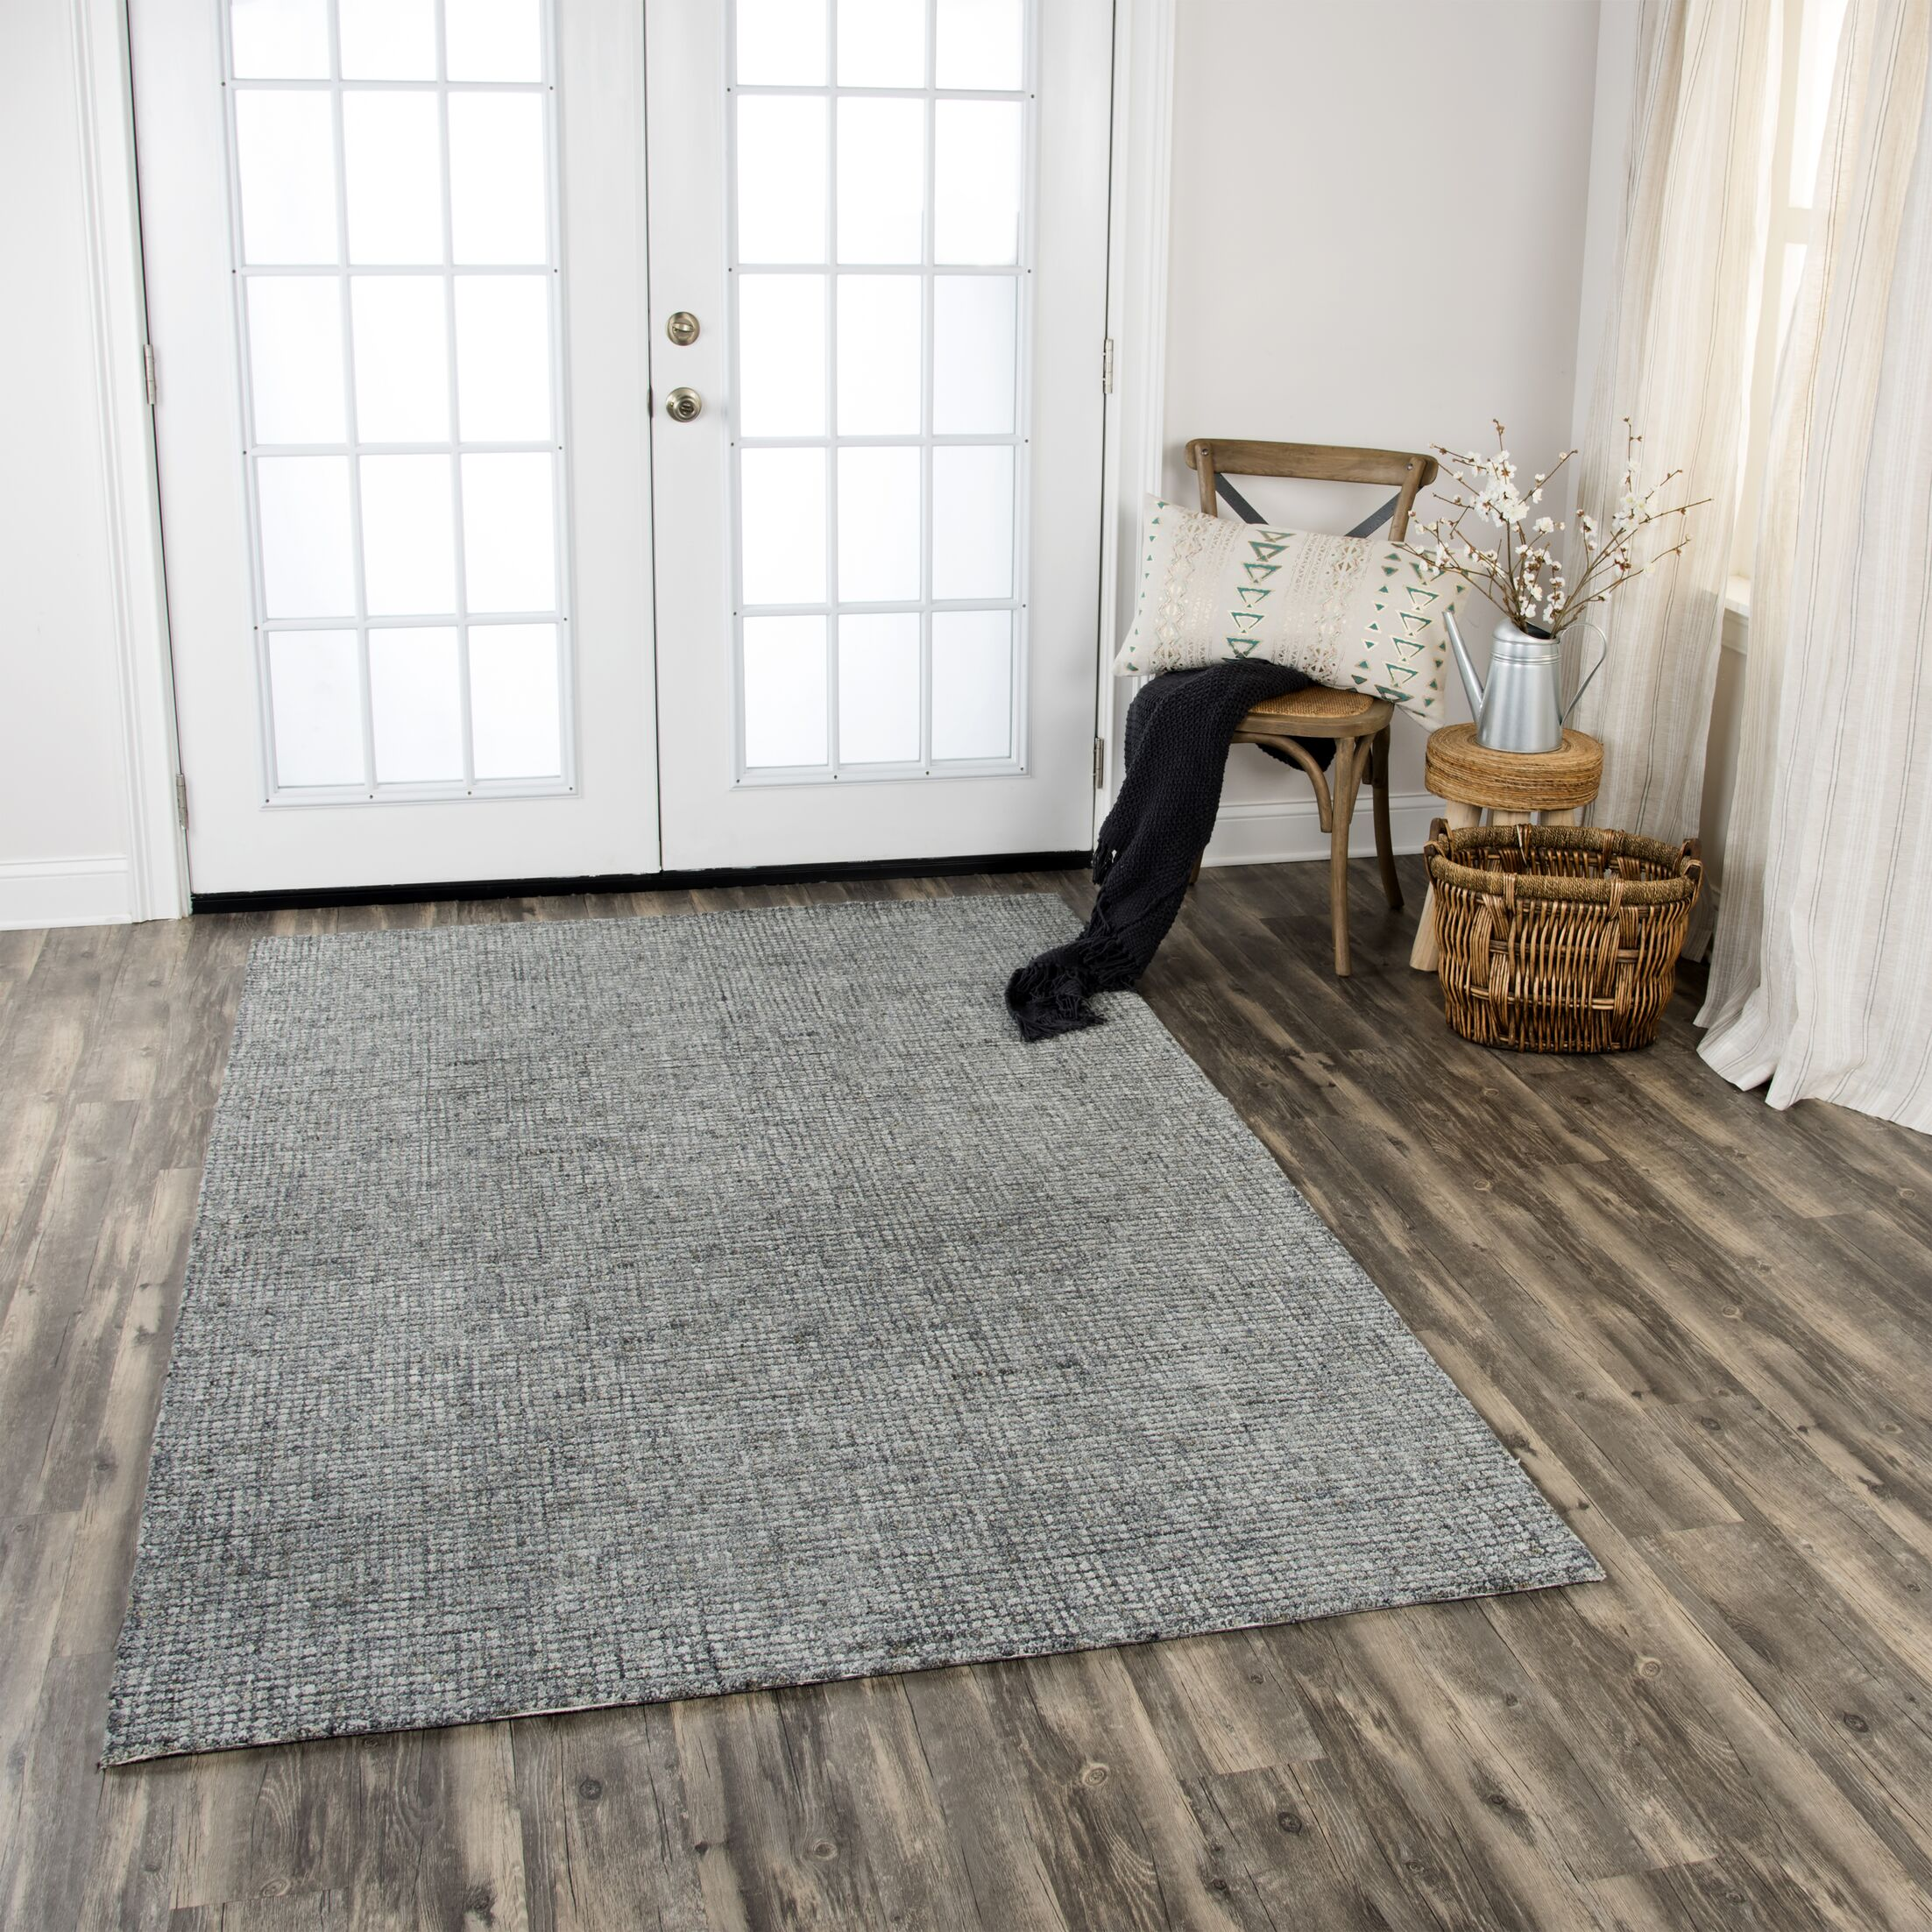 Hover Hand-Tufted Wool Dark Gray Area Rug Rug Size: Rectangle 3' x 5'